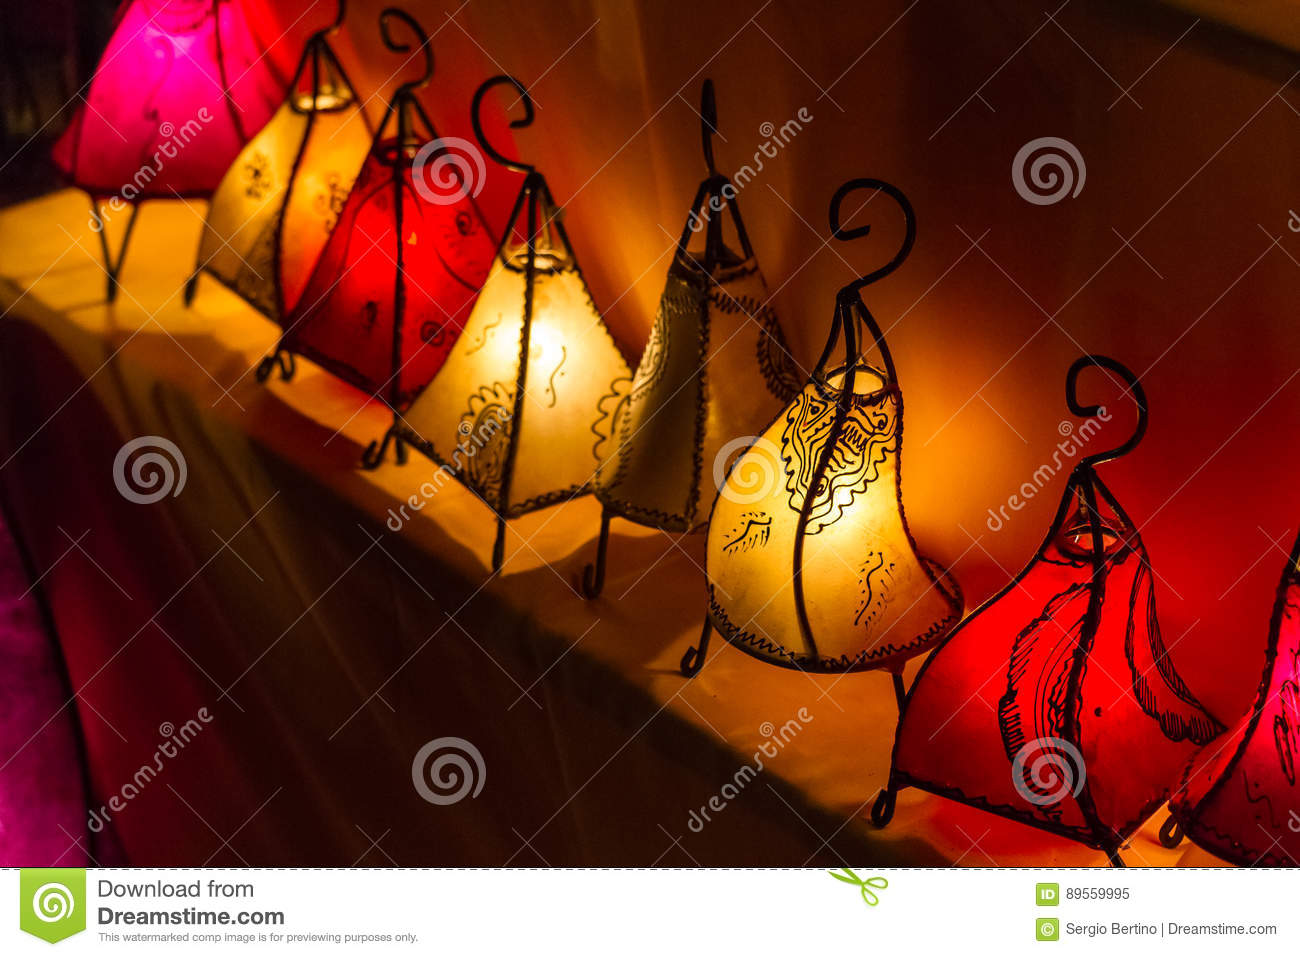 Row of handcrafted colorful glowing lanterns